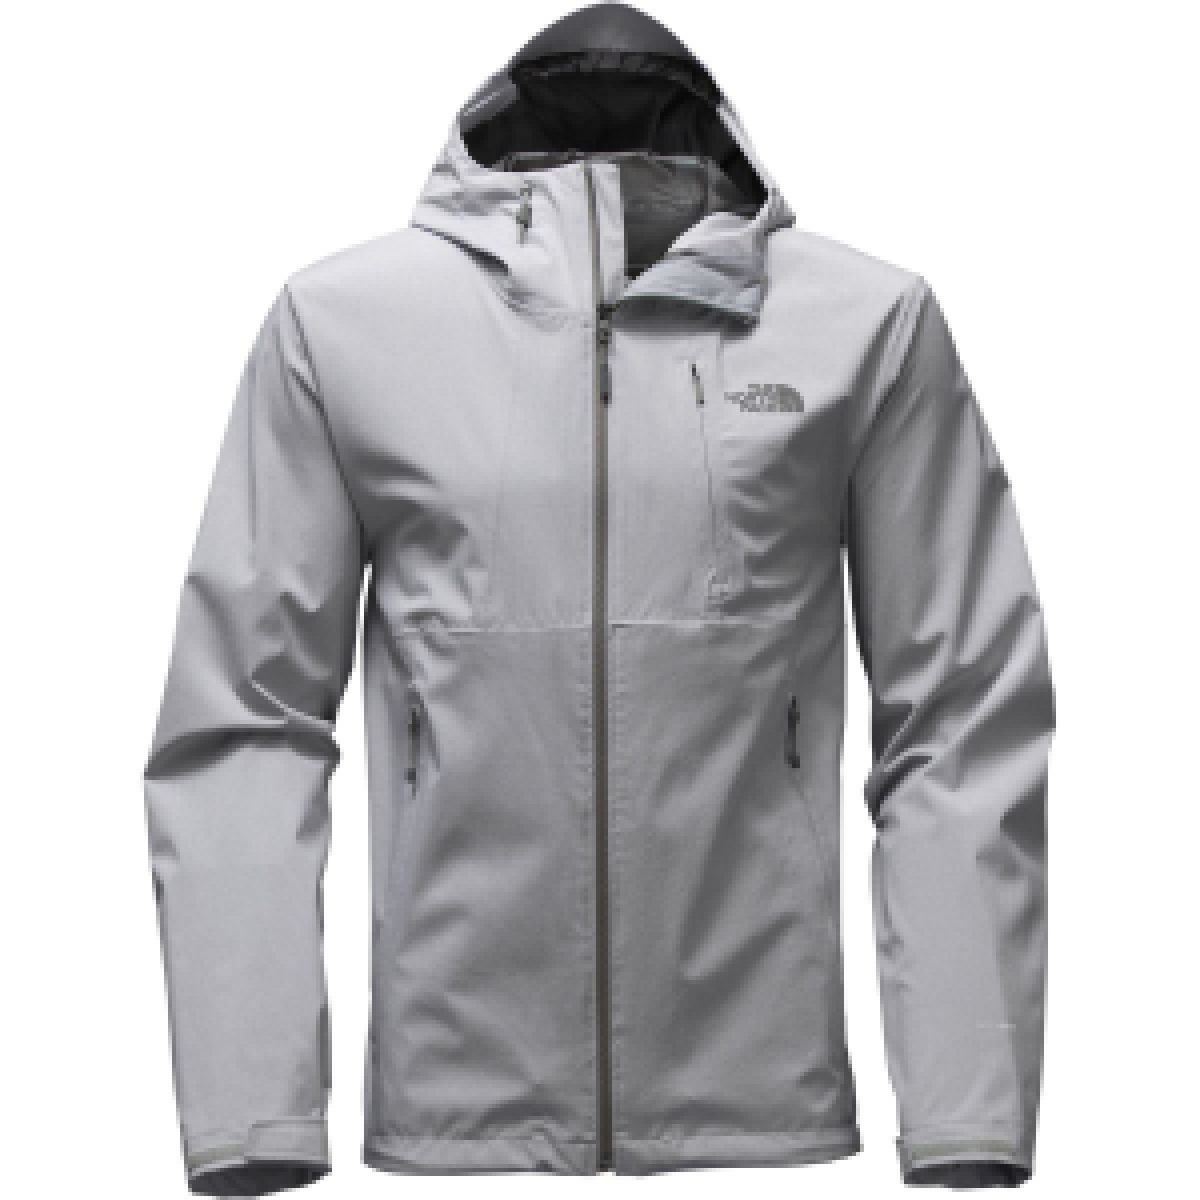 a441c35ee9  239.16Availability  In stock. The North Face Men s Thermoball Triclimate  Insulated Jacket pairs ...